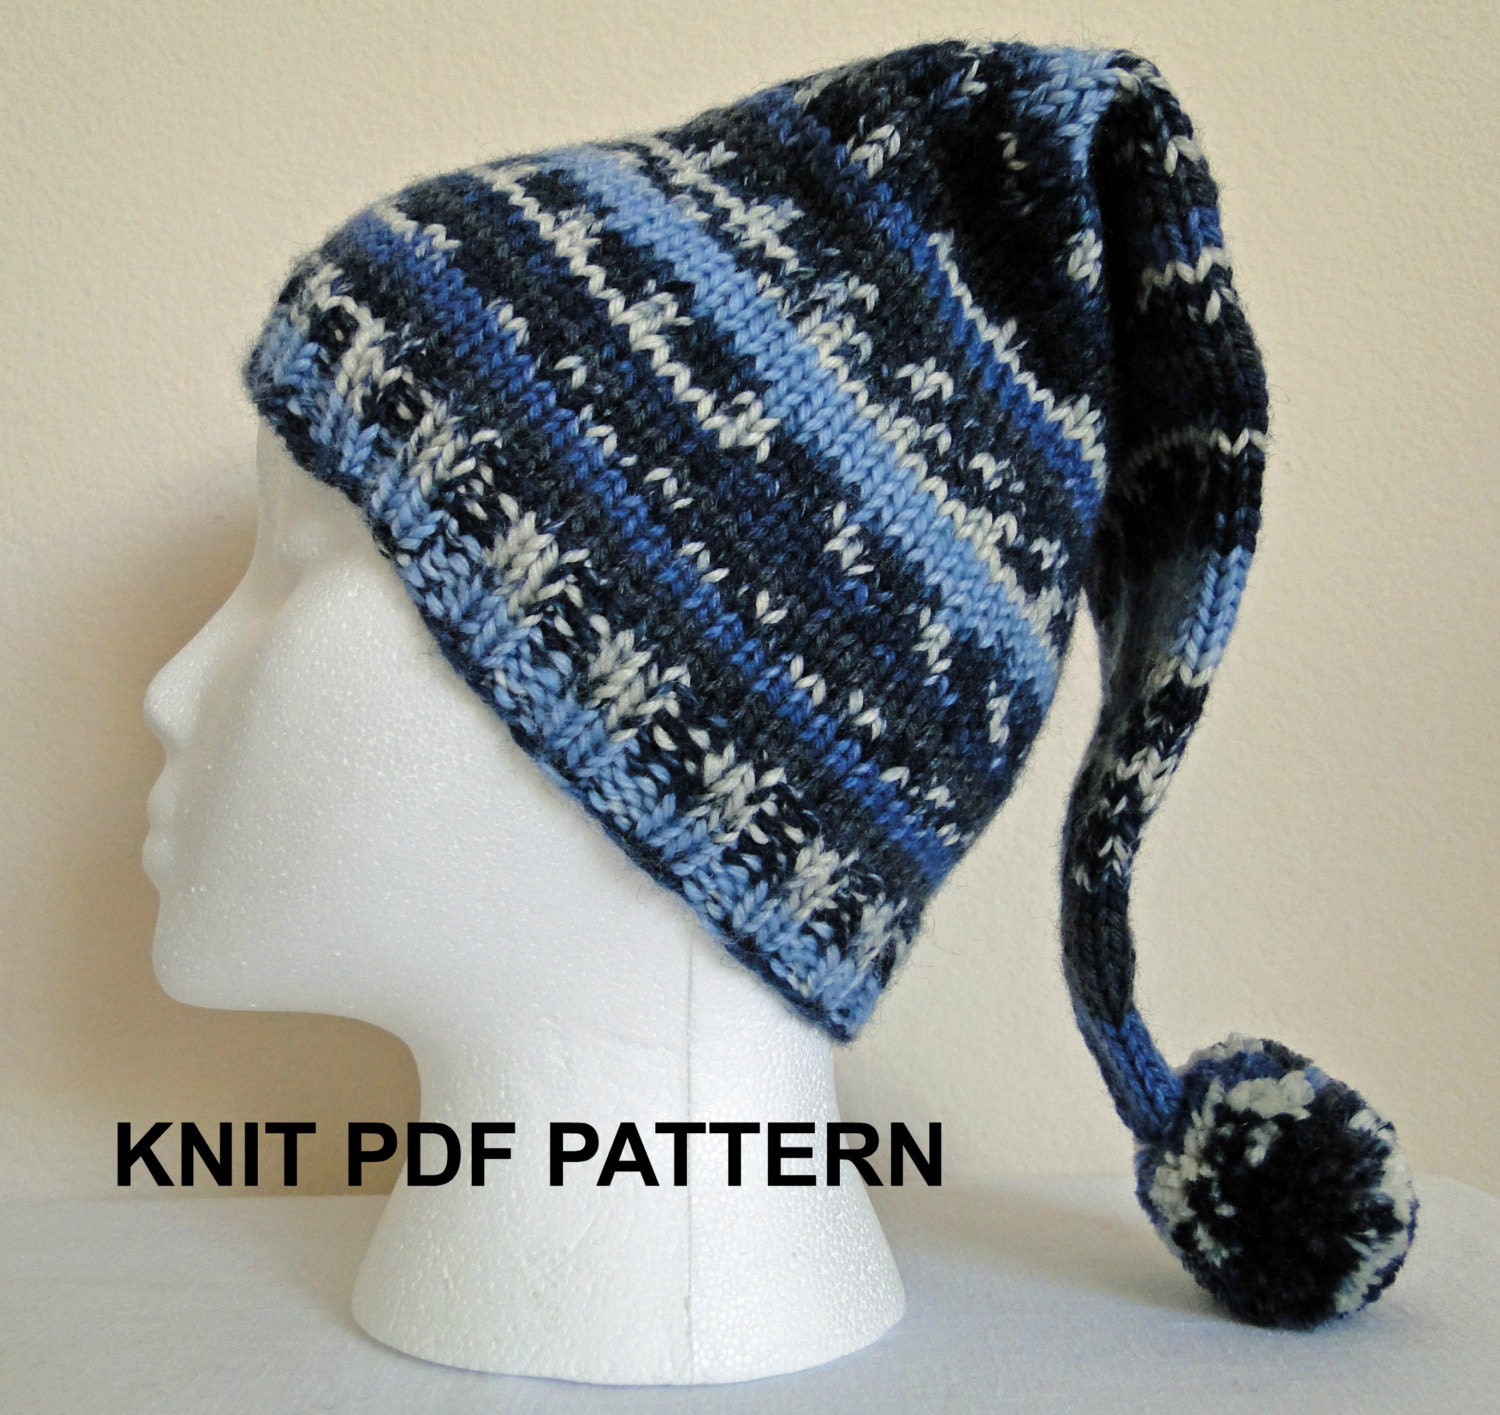 PDF PATTERN Knit Adult Stocking Hat Ski Hat by ...